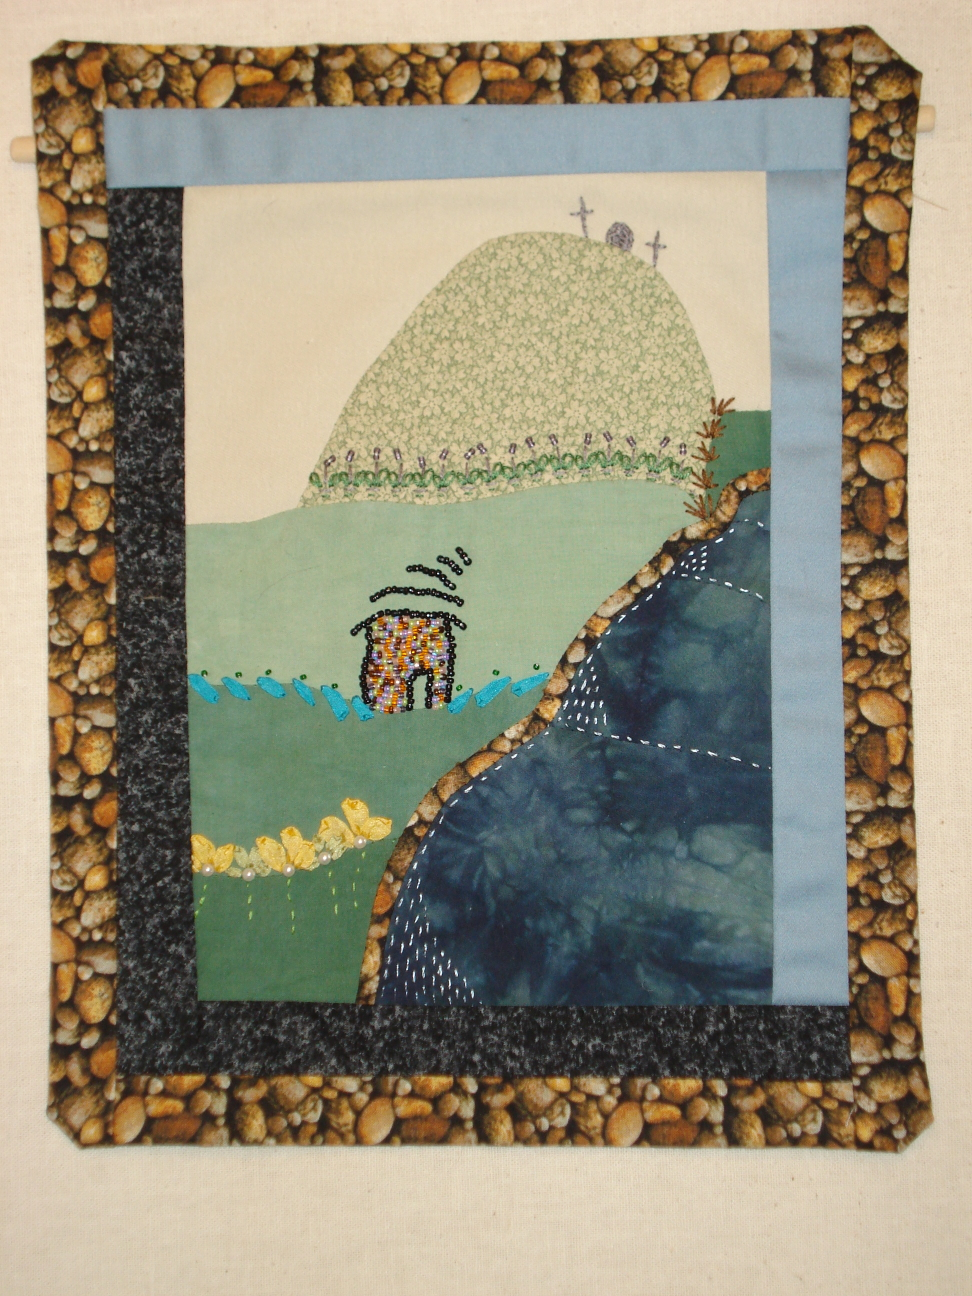 The Tin Man's House, applique, ribbon embroidery, beadwork, by Mary Warner.